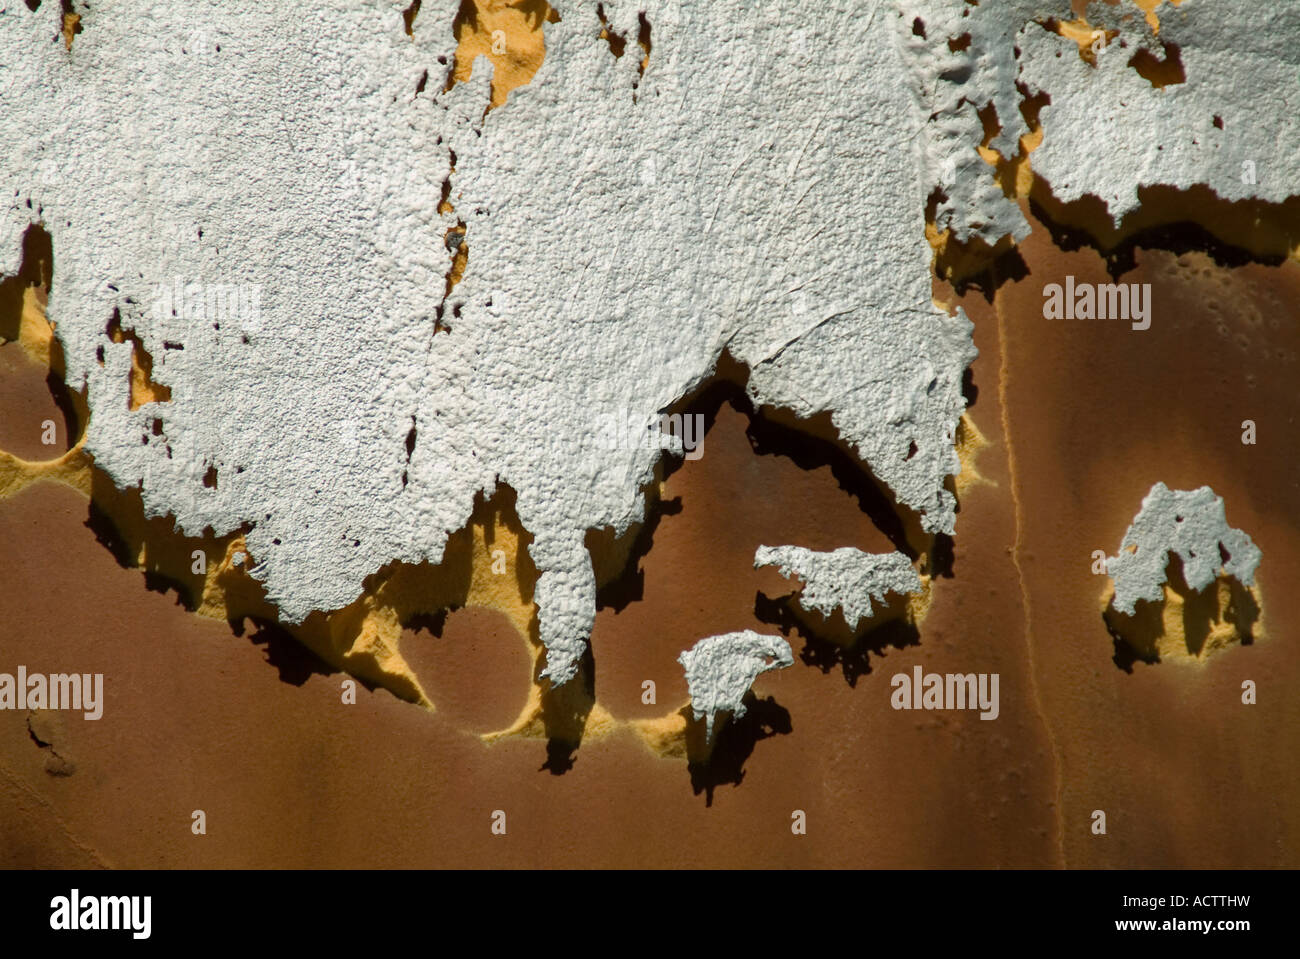 ABSTRACT PHOTO OF BROKEN DOWN INSULATION LOOKING LIKE D MAP OF - Map insulation